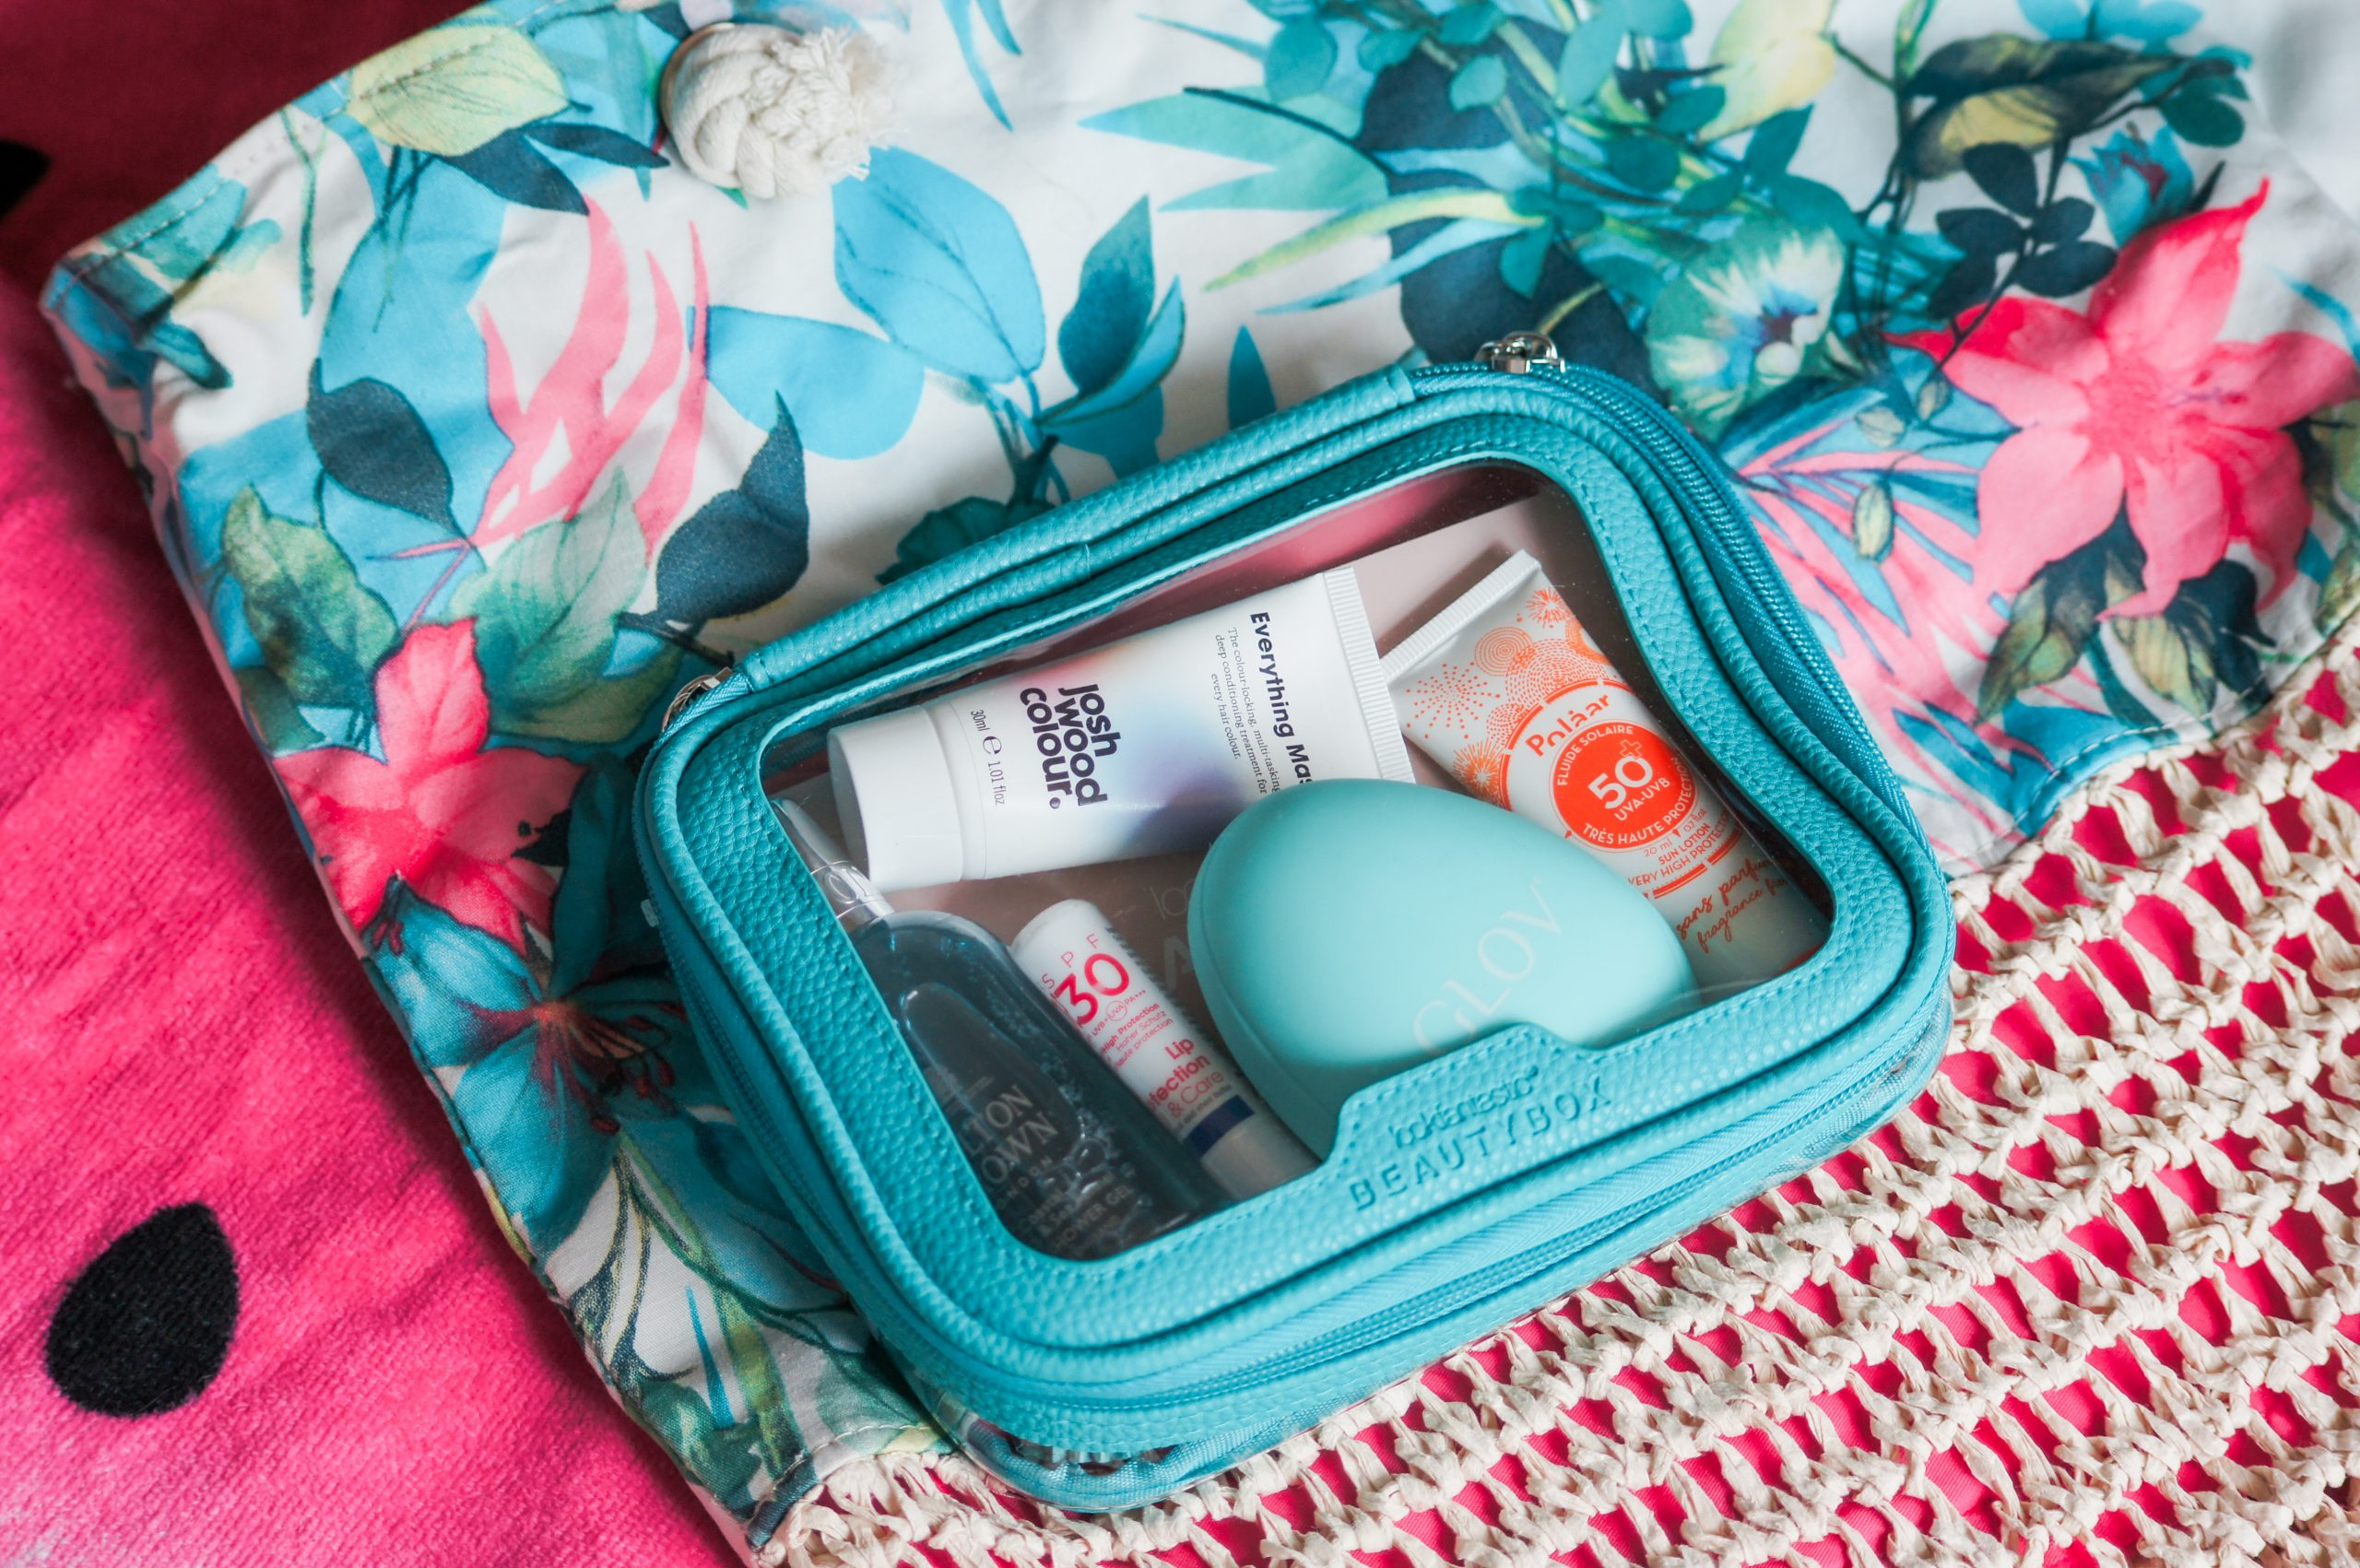 Beauty bag lookfantastic